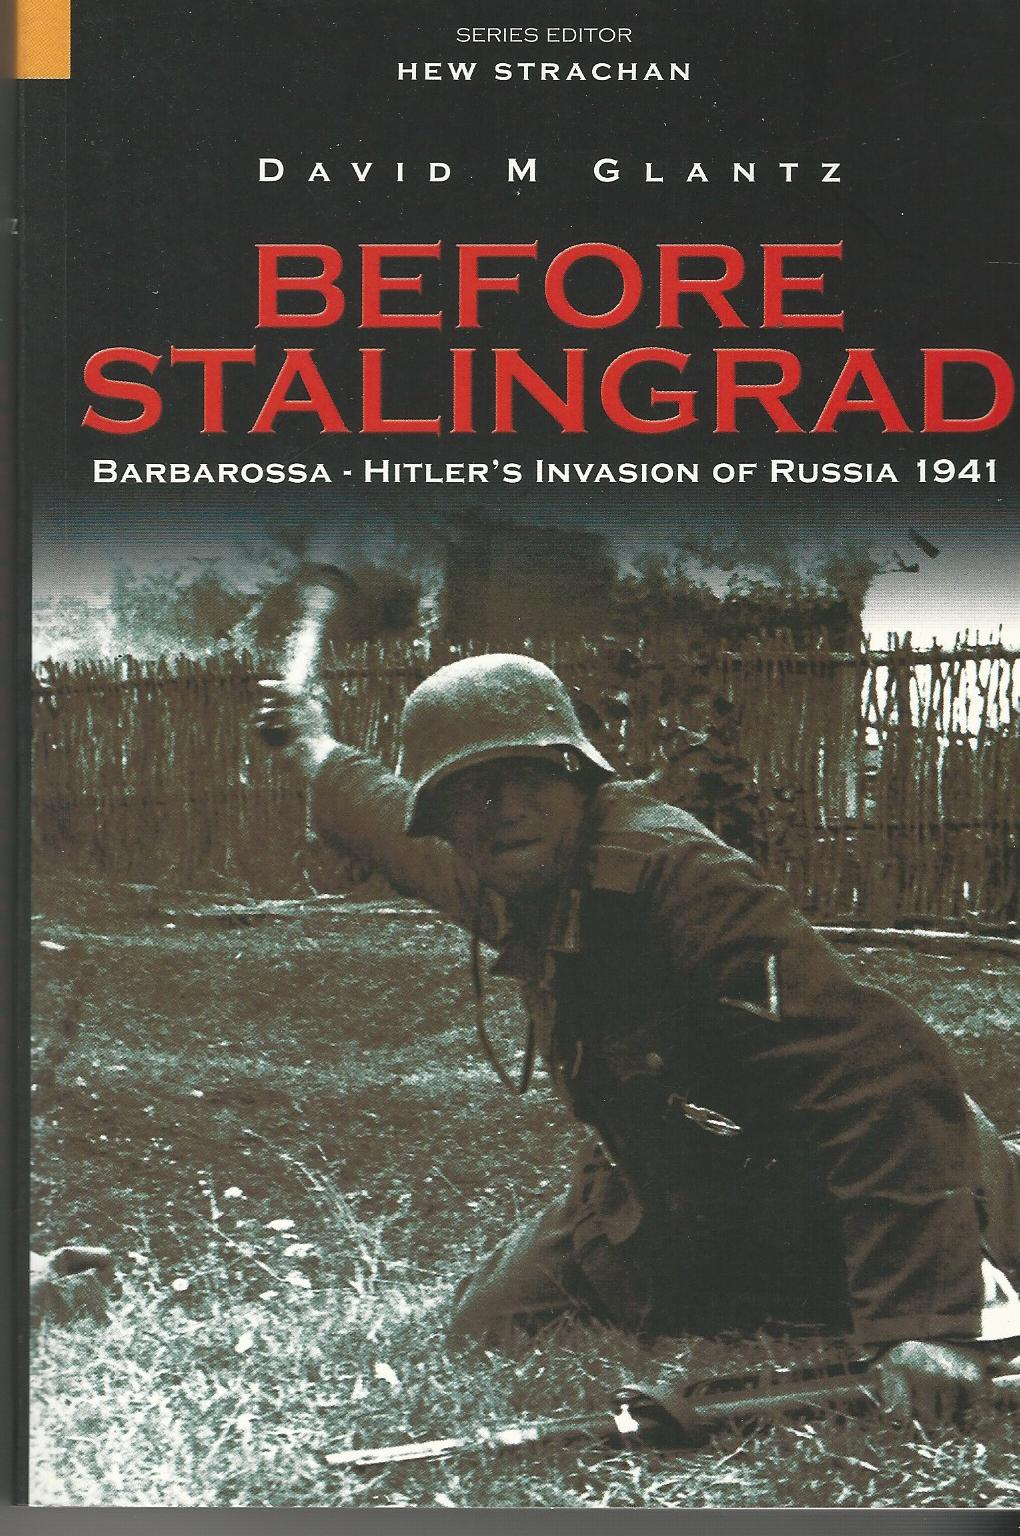 Image for Before Stalingrad: Barbarossa, Hitler's Invasion of Russia 1941 (Battles & Campaigns)